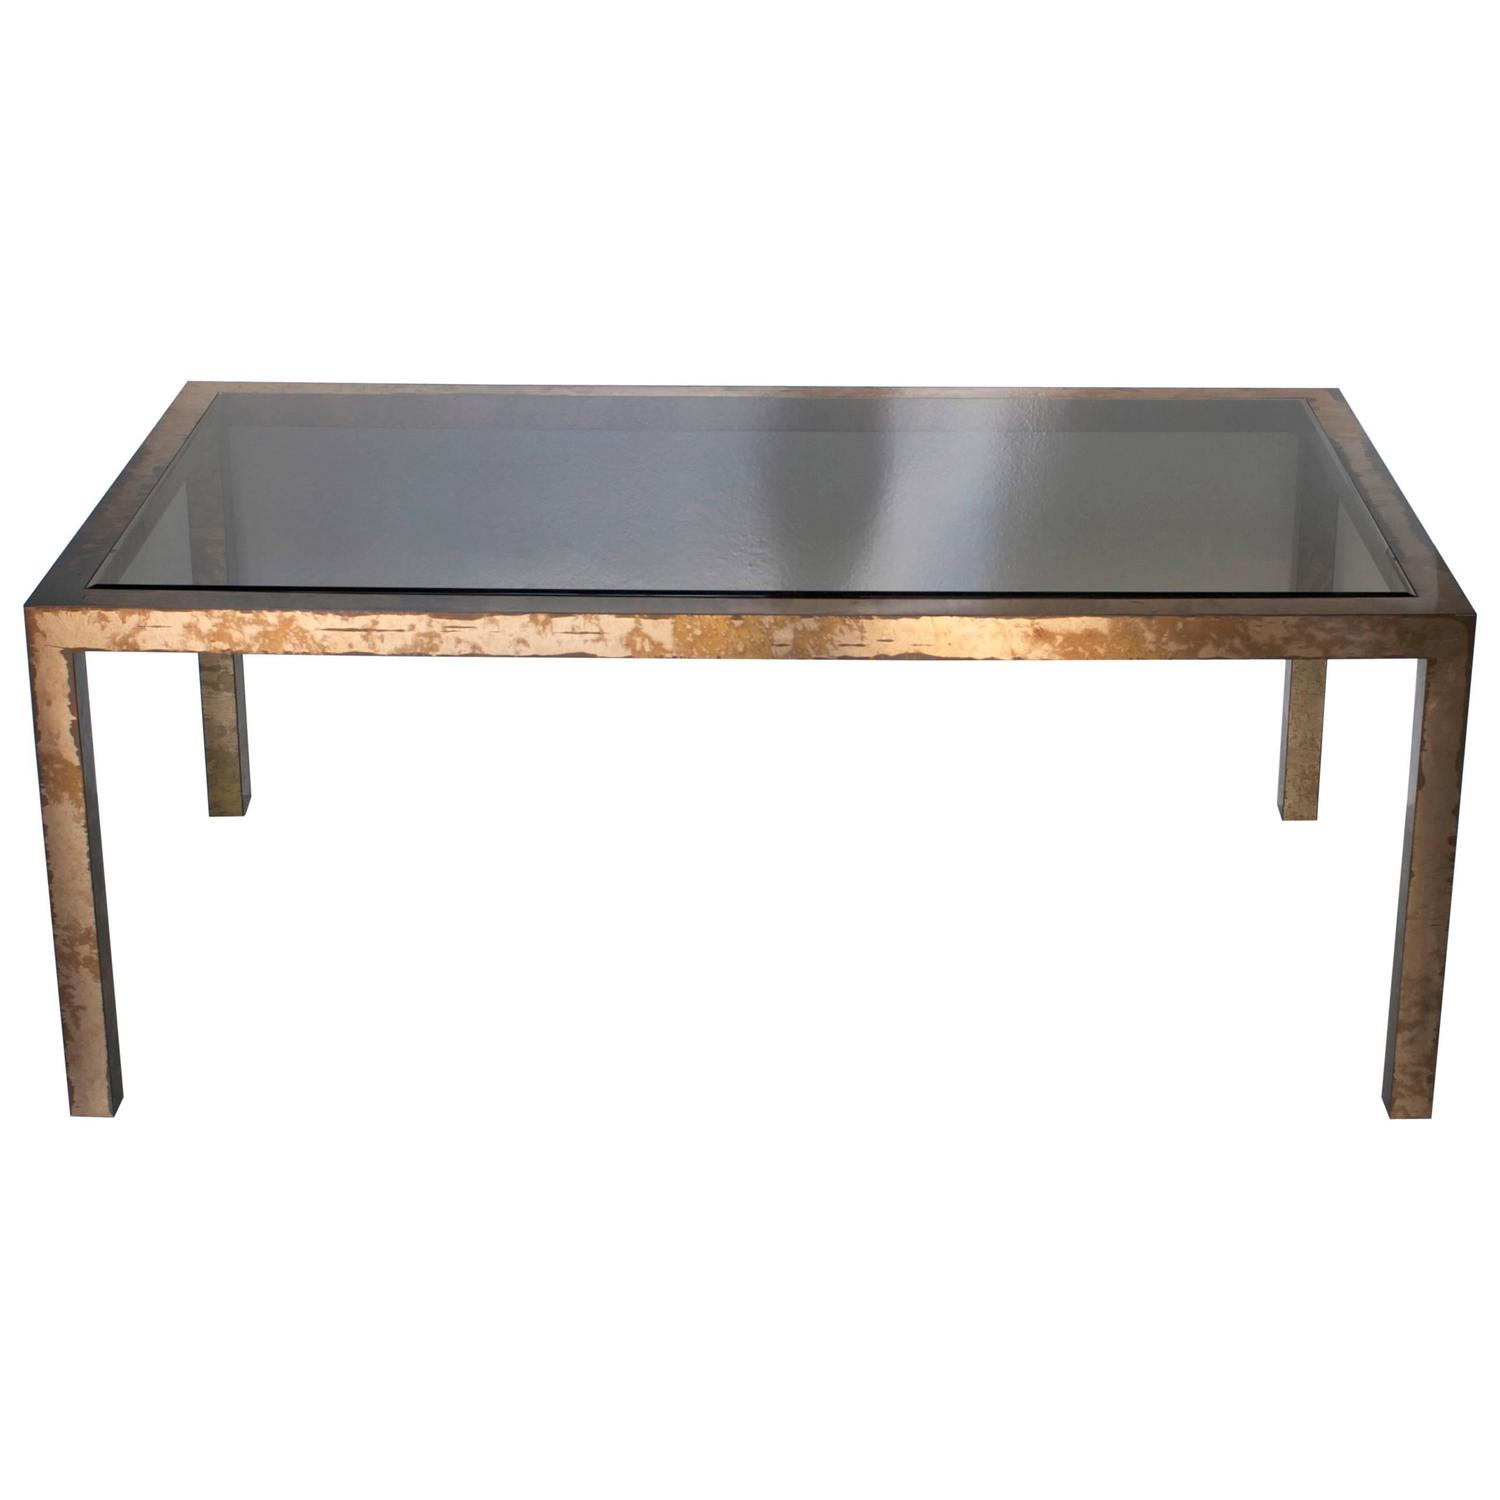 Acid Washed Brass Parsons Dining Table at 1stdibs : 3412202z from www.1stdibs.com size 1500 x 1500 jpeg 50kB